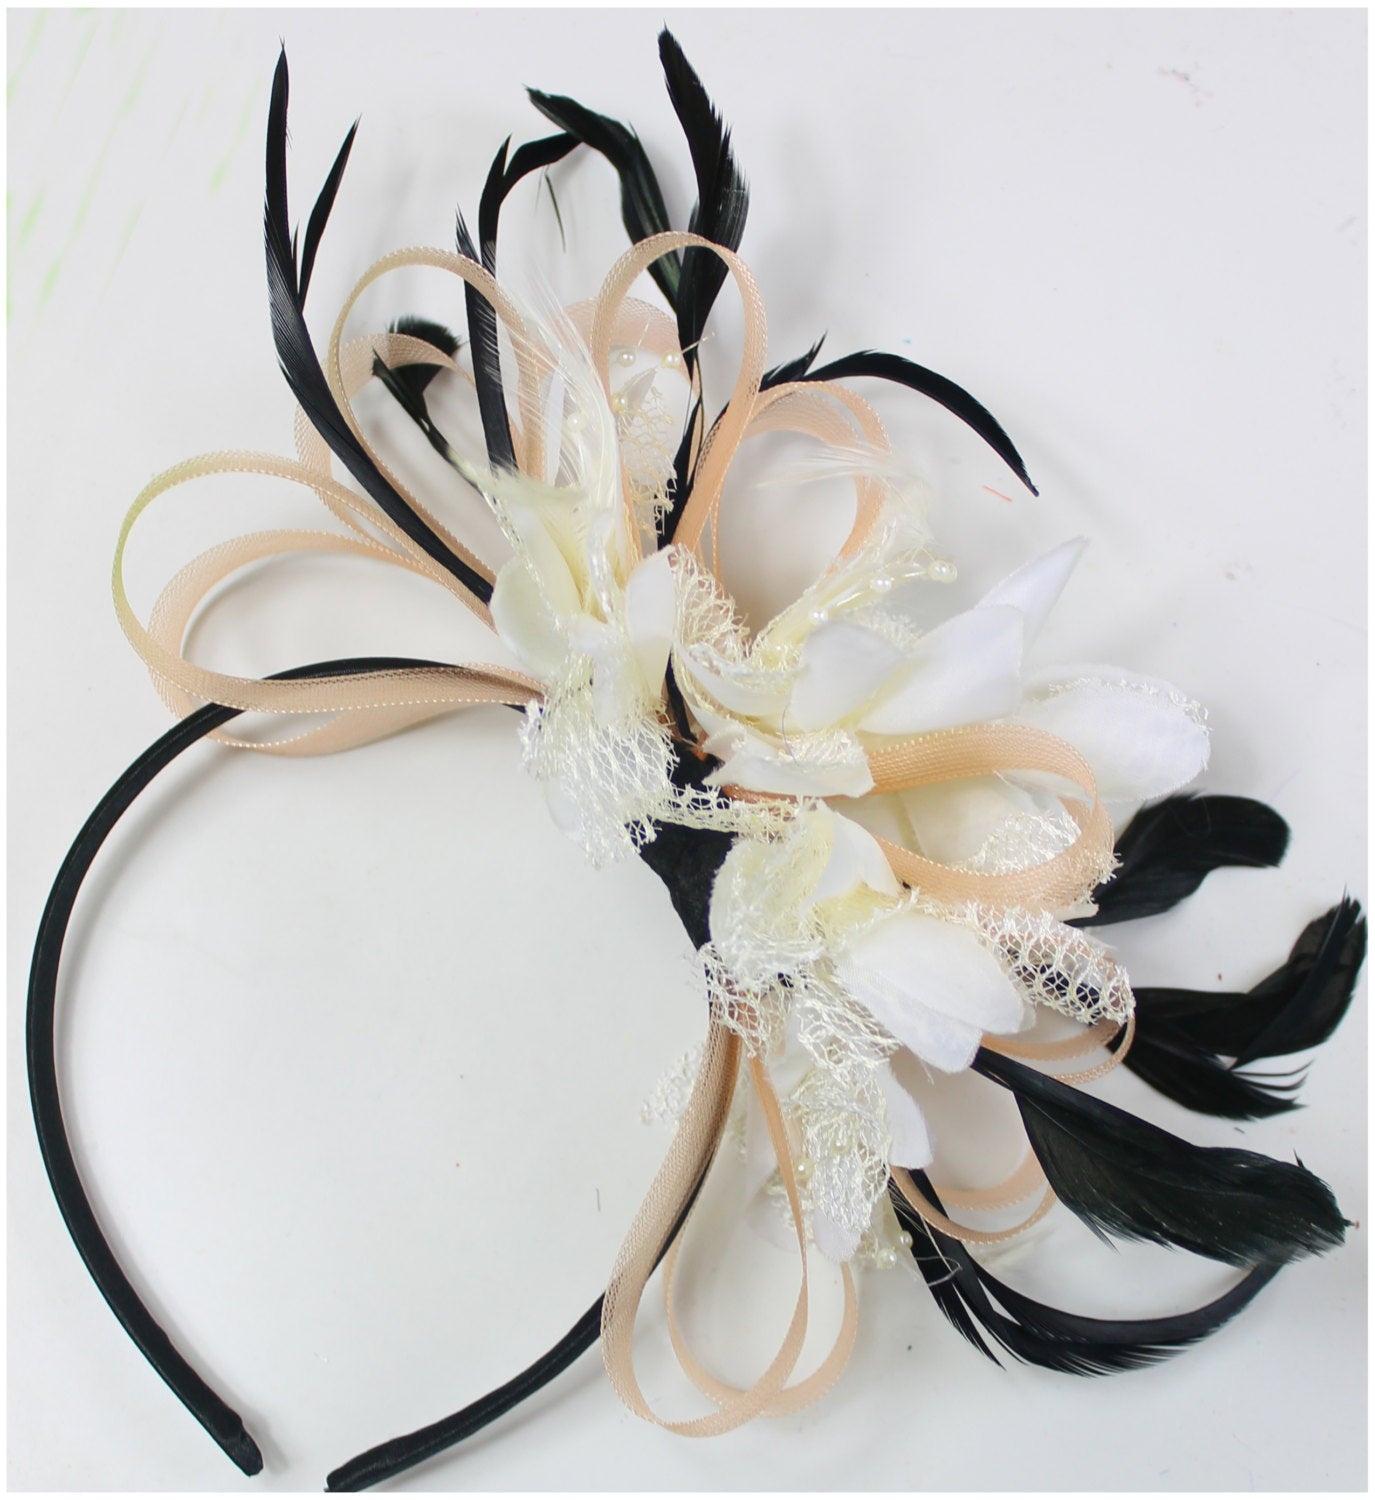 Caprilite Nude Salmon Pink & Cream Fascinator on Headband AliceBand UK Wedding Ascot Races Loop